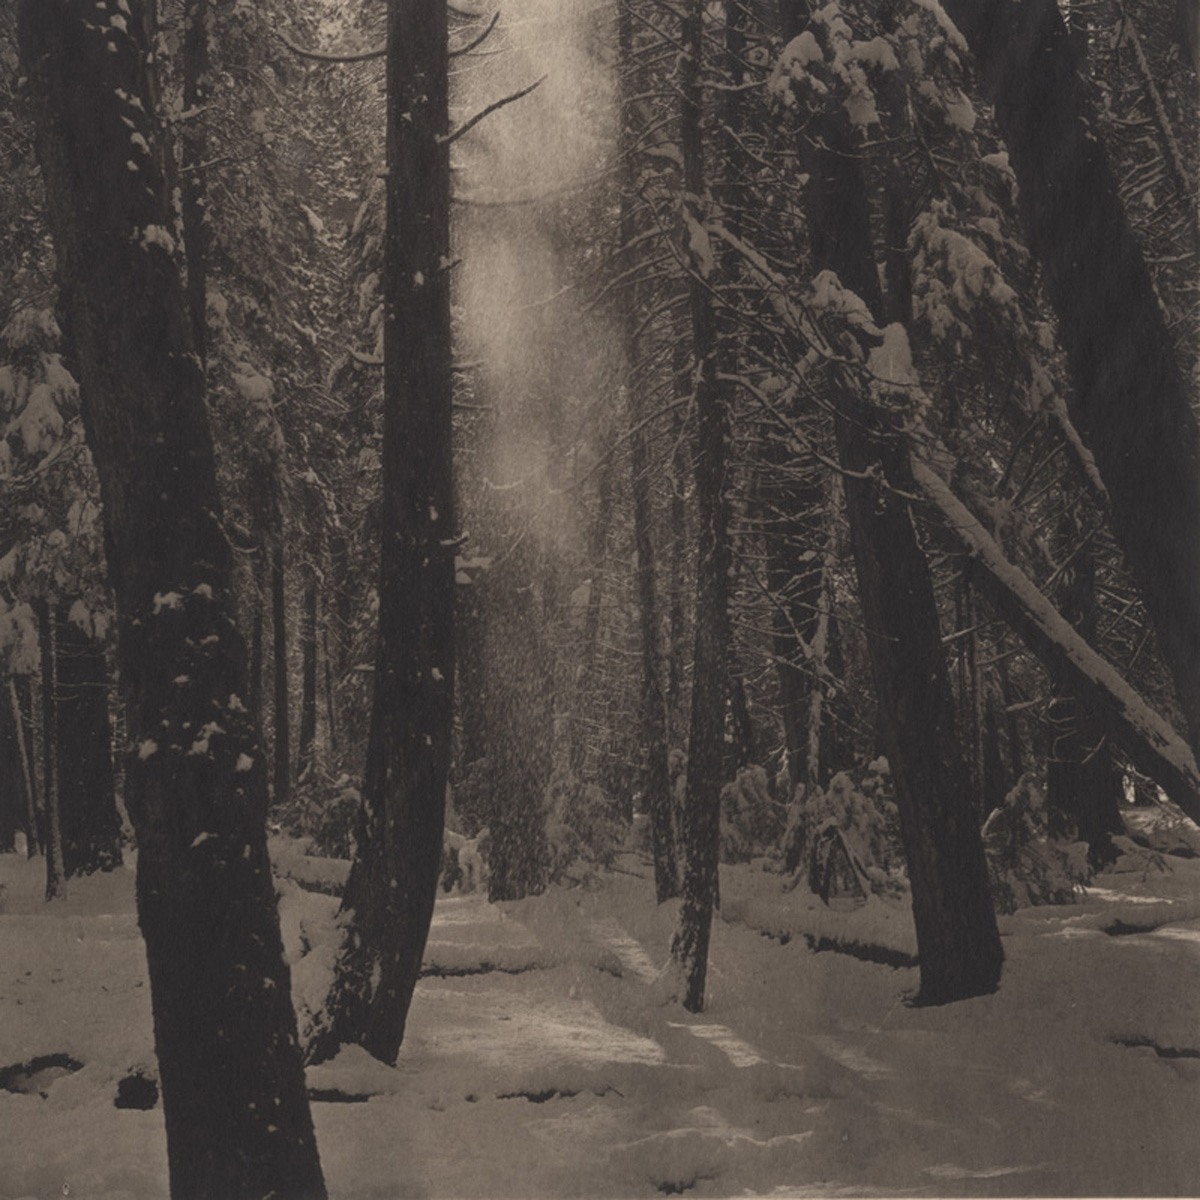 Takeshi Shikama Silent Respiration of Forests - Yosemite #6